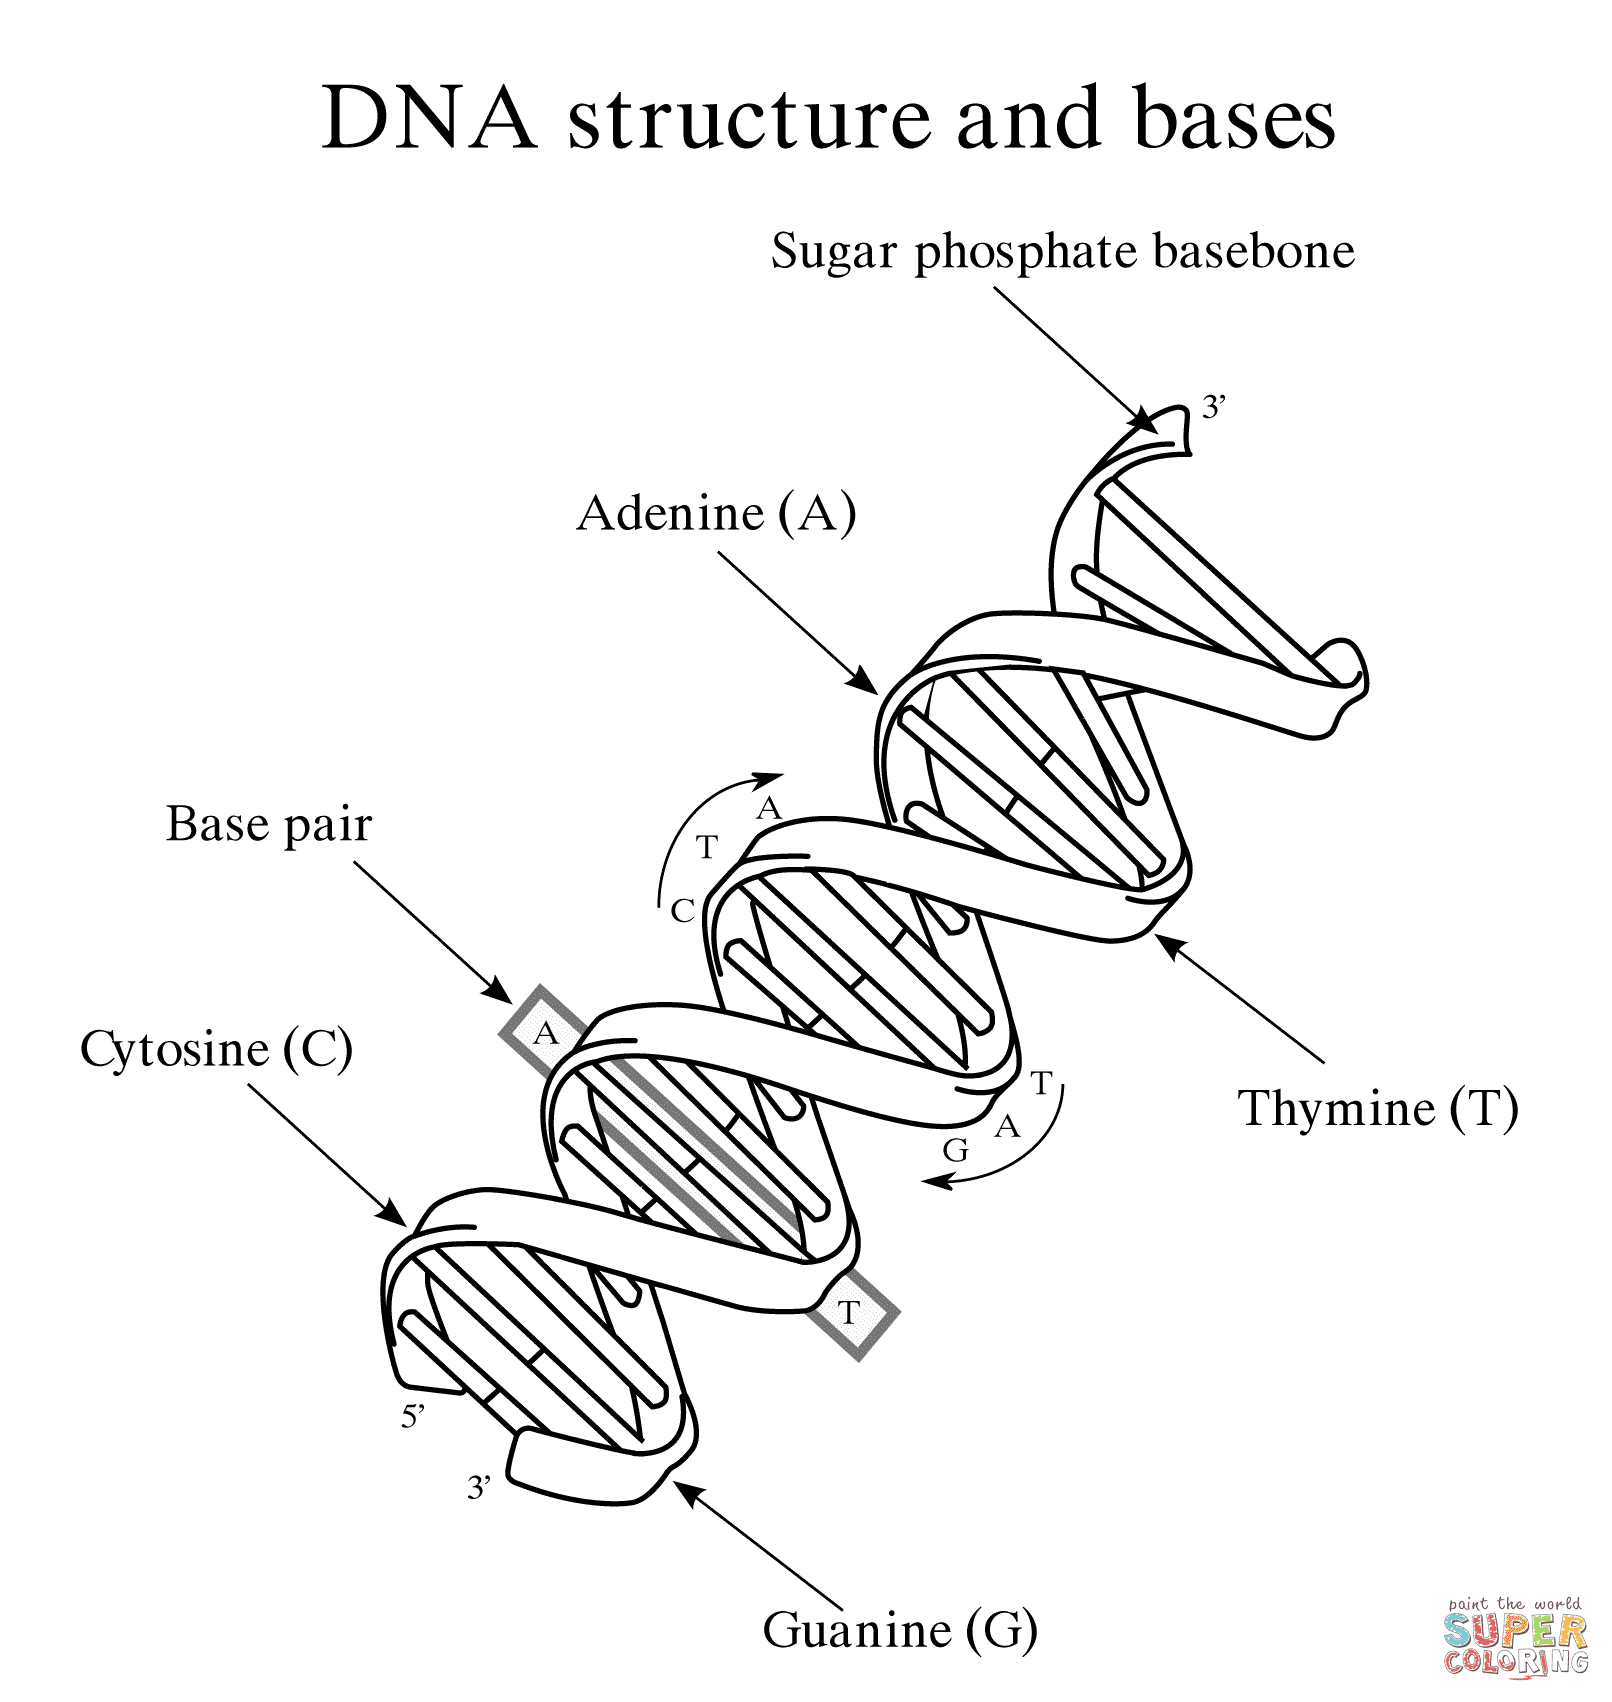 dna structure and bases coloring pages